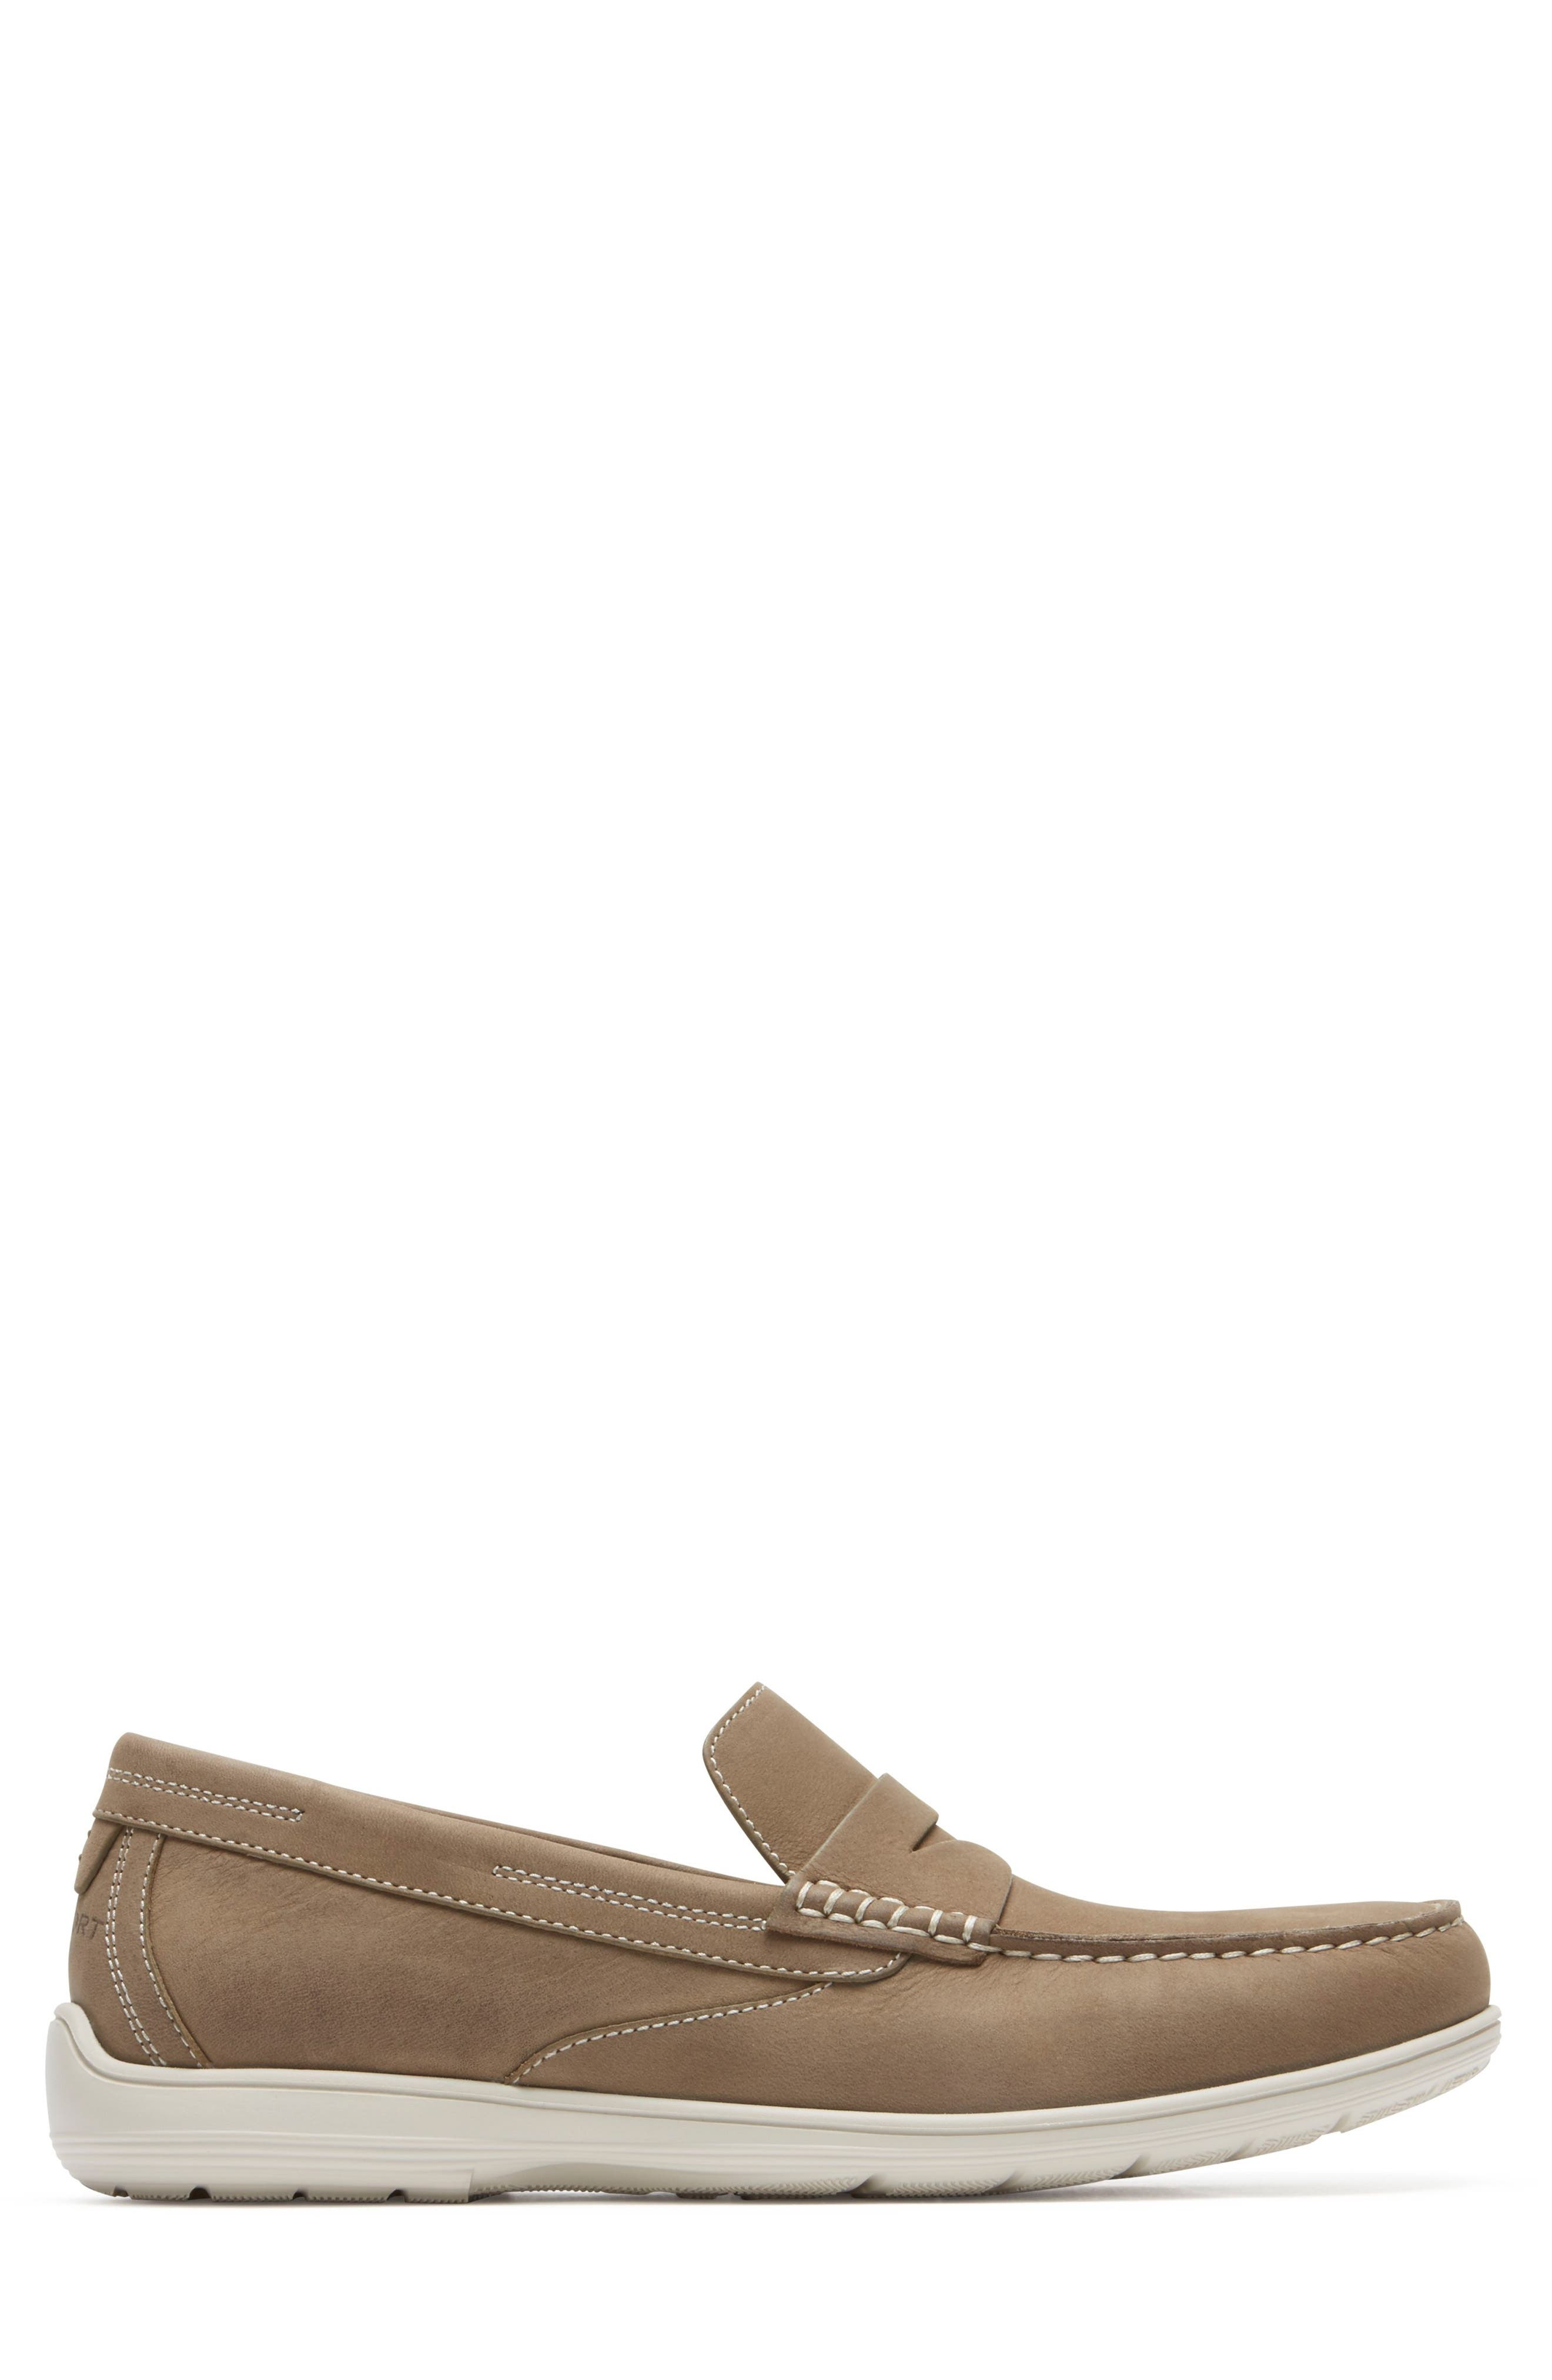 Total Motion Penny Loafer,                             Alternate thumbnail 8, color,